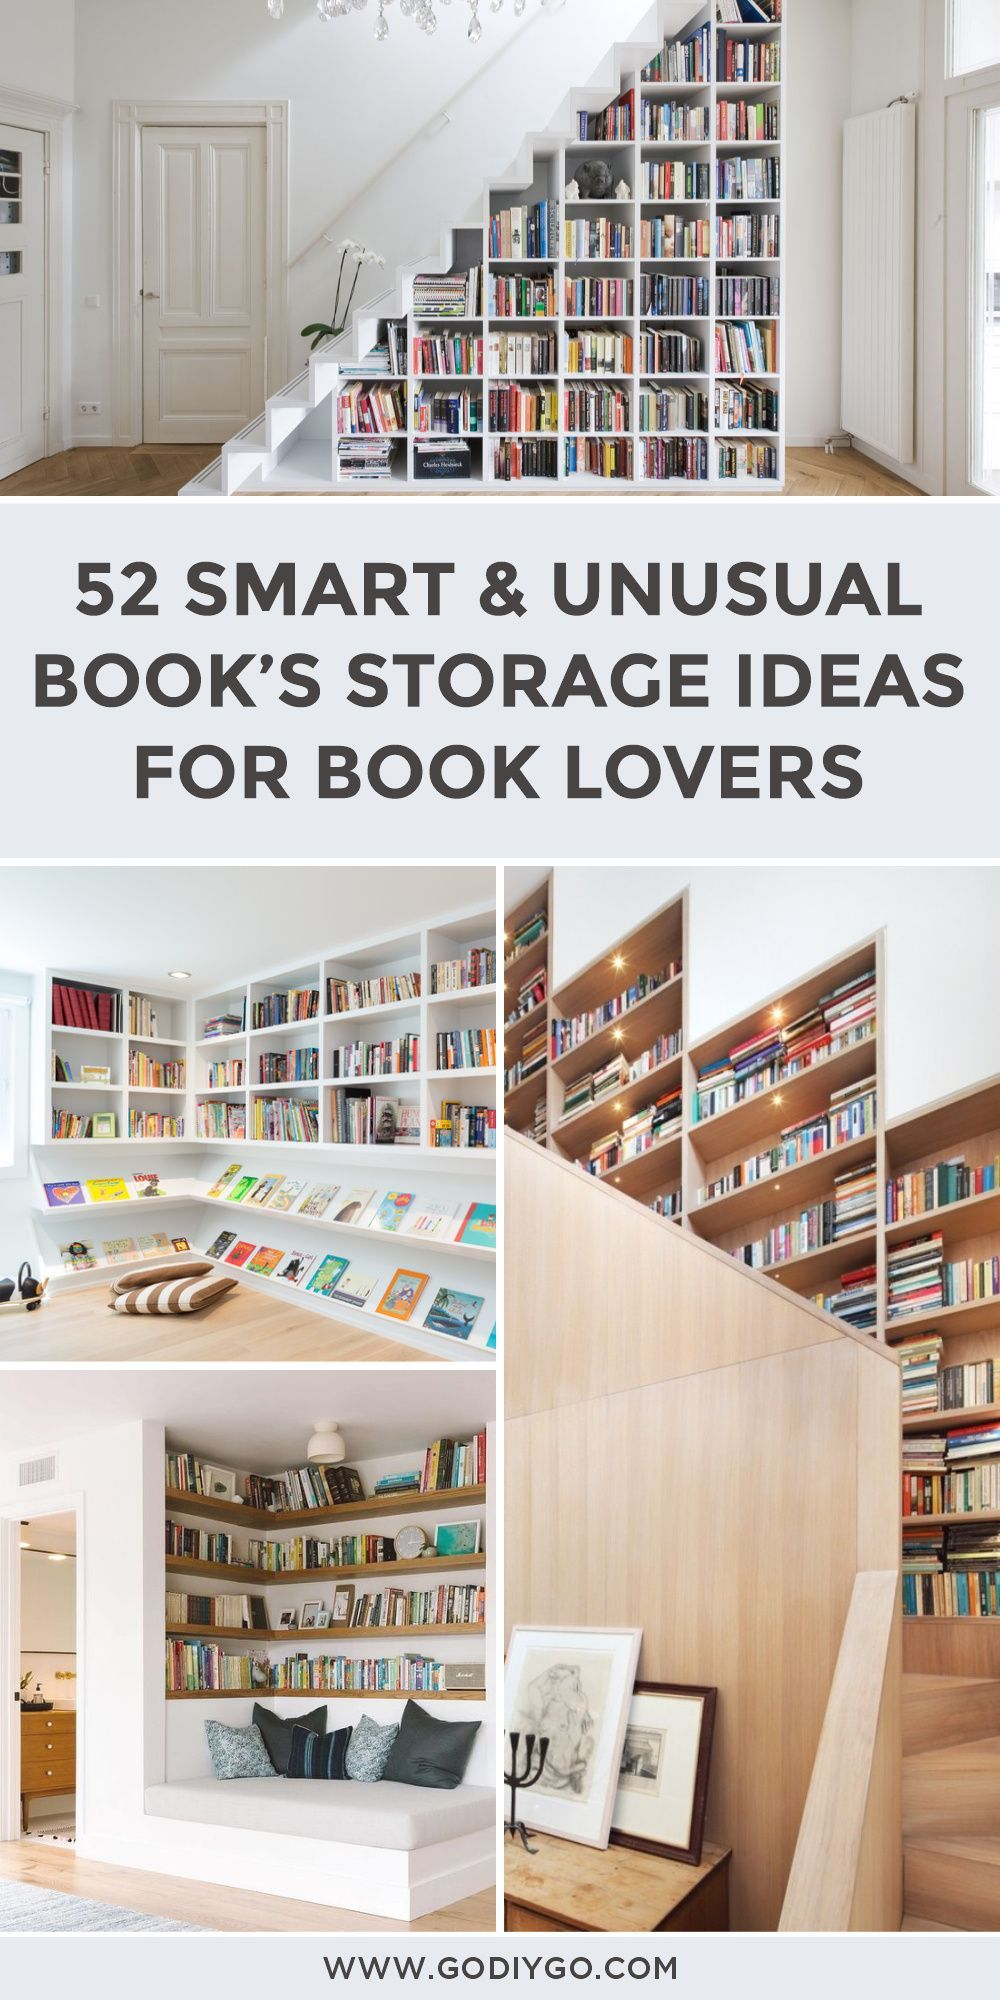 52 Smart And Unusual Book S Storage Ideas For Book Lovers Godiygo Com In 2020 Book Storage Storage Space Dividers